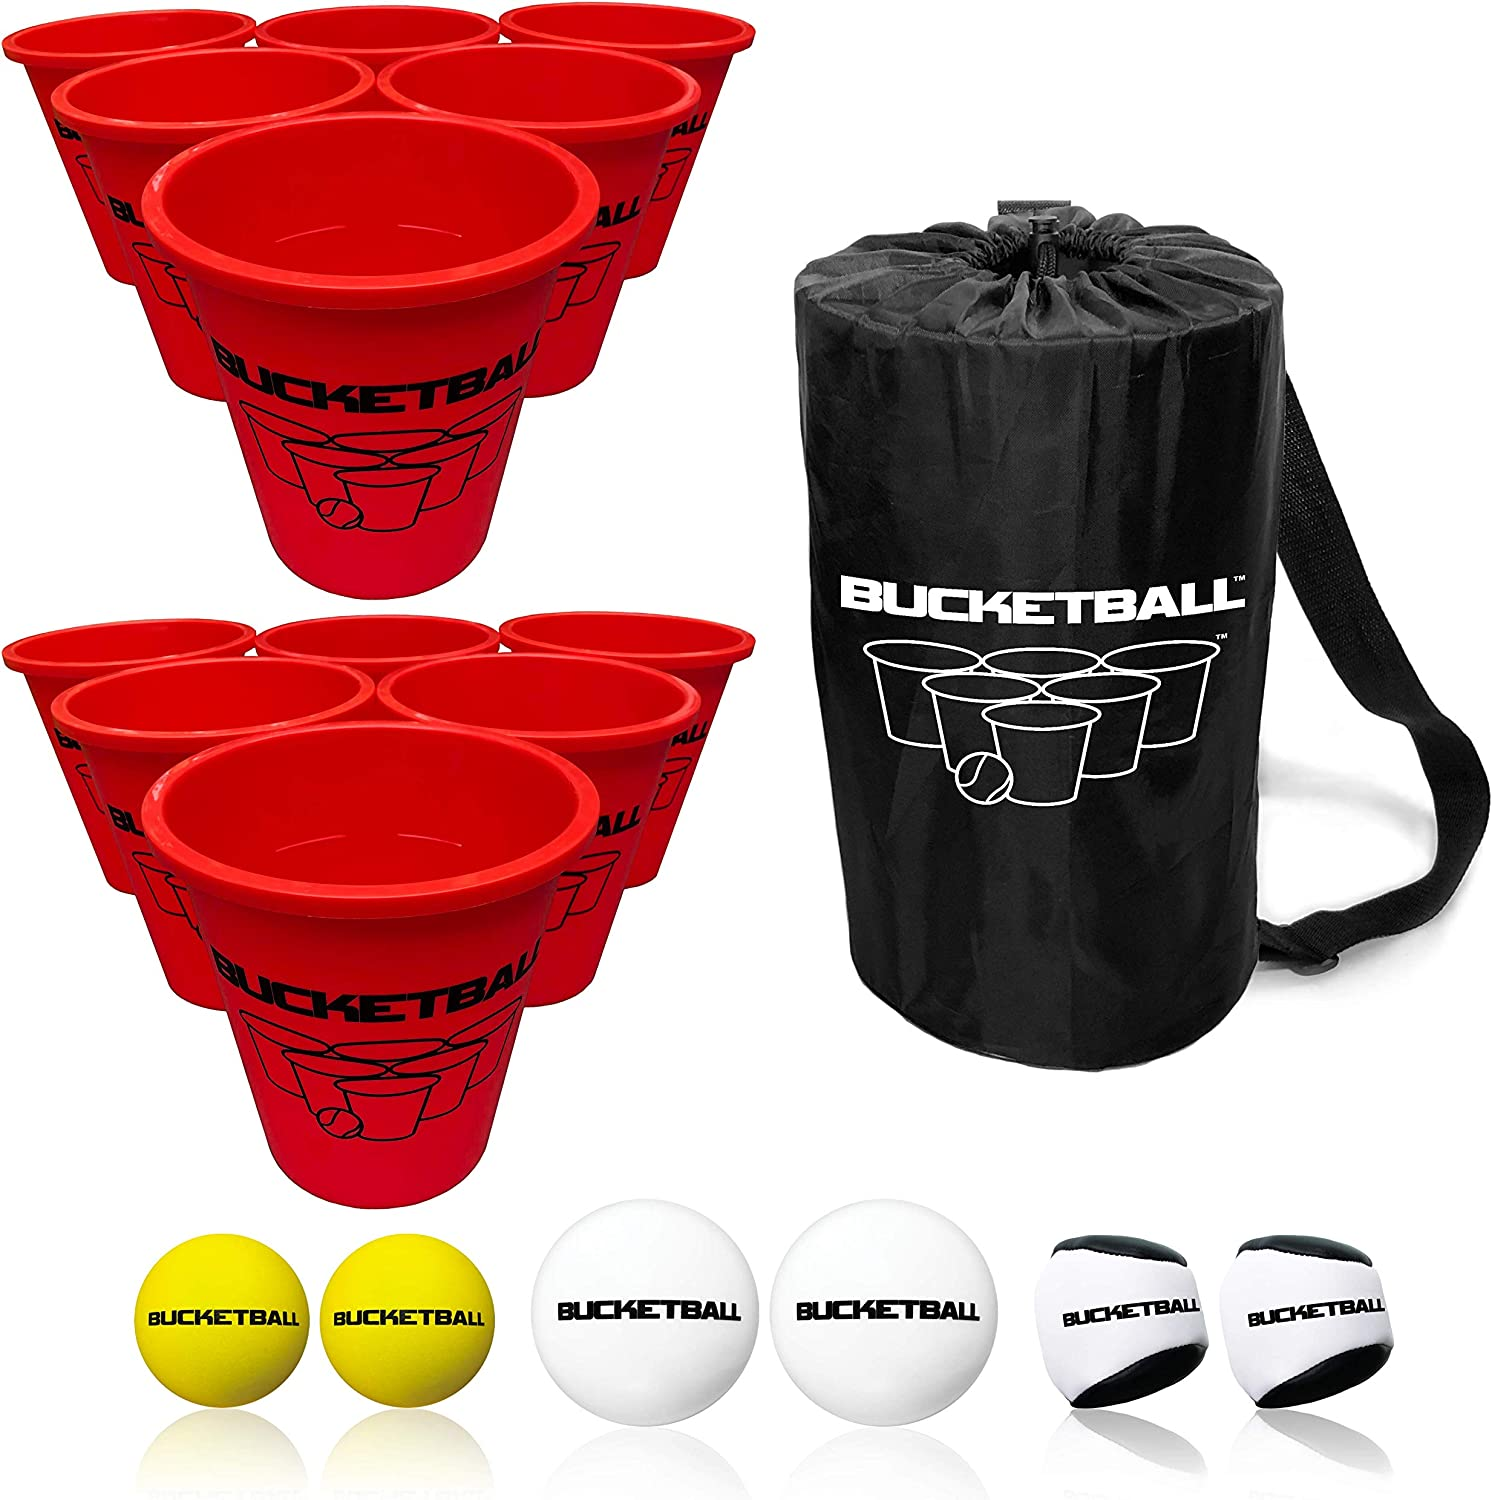 BucketBall Max 87% OFF - Giant New arrival Yard Pong Yar Beach Ultimate Edition Pool